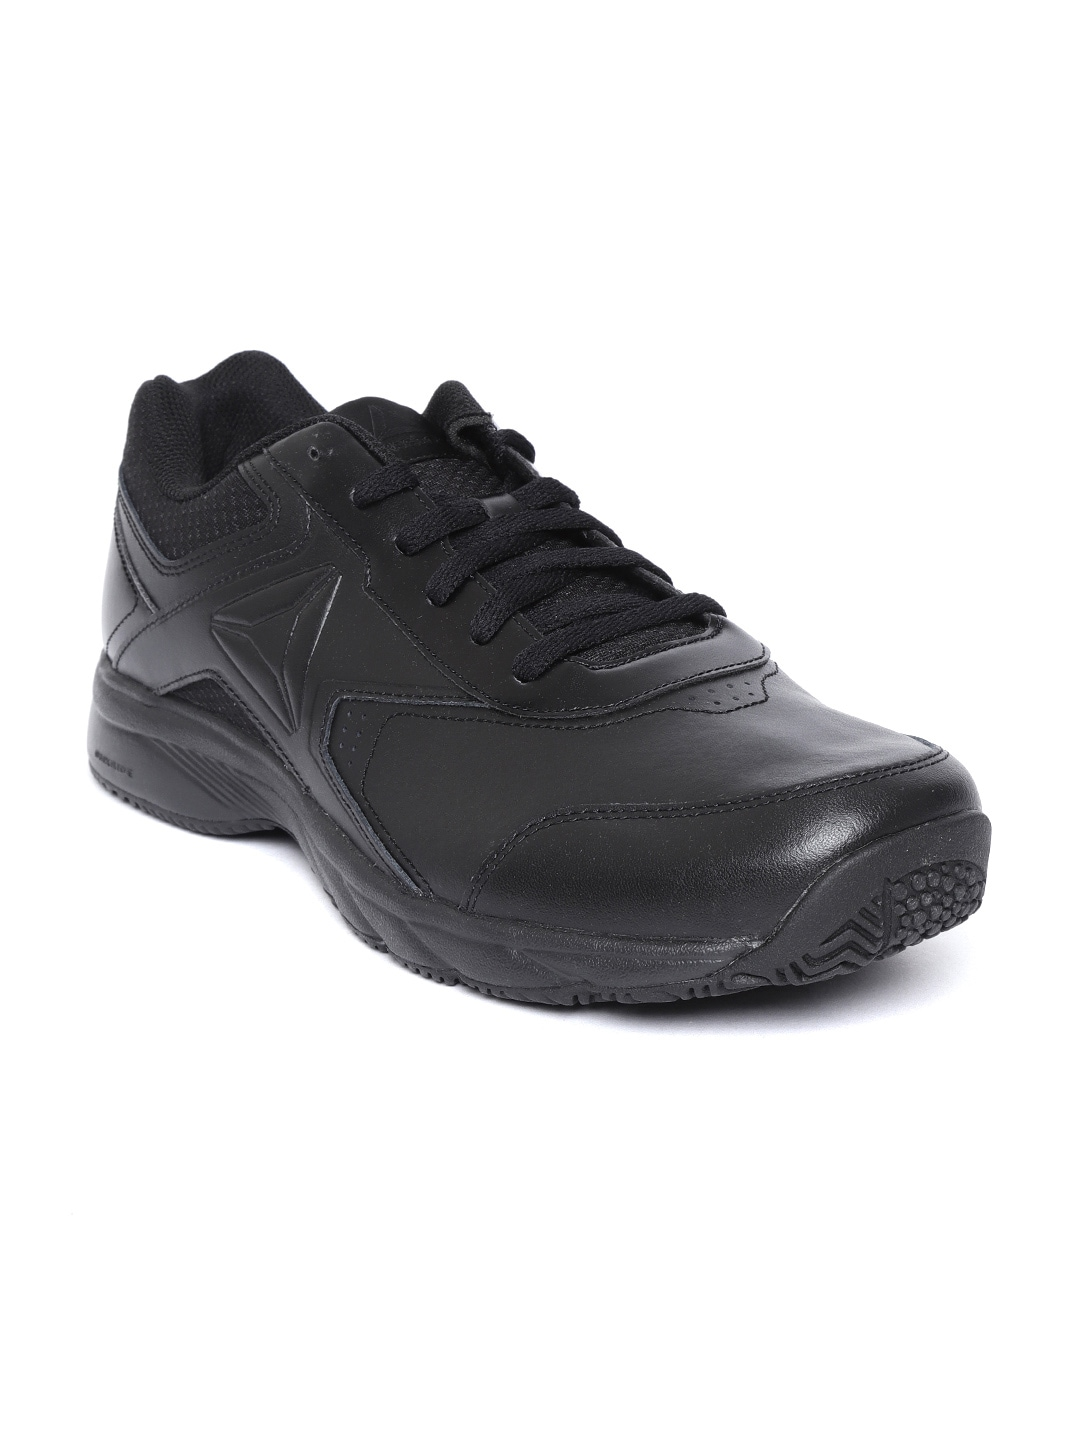 Reebok Sports Shoes - Buy Reebok Sports Shoes in India  0d834d1d3